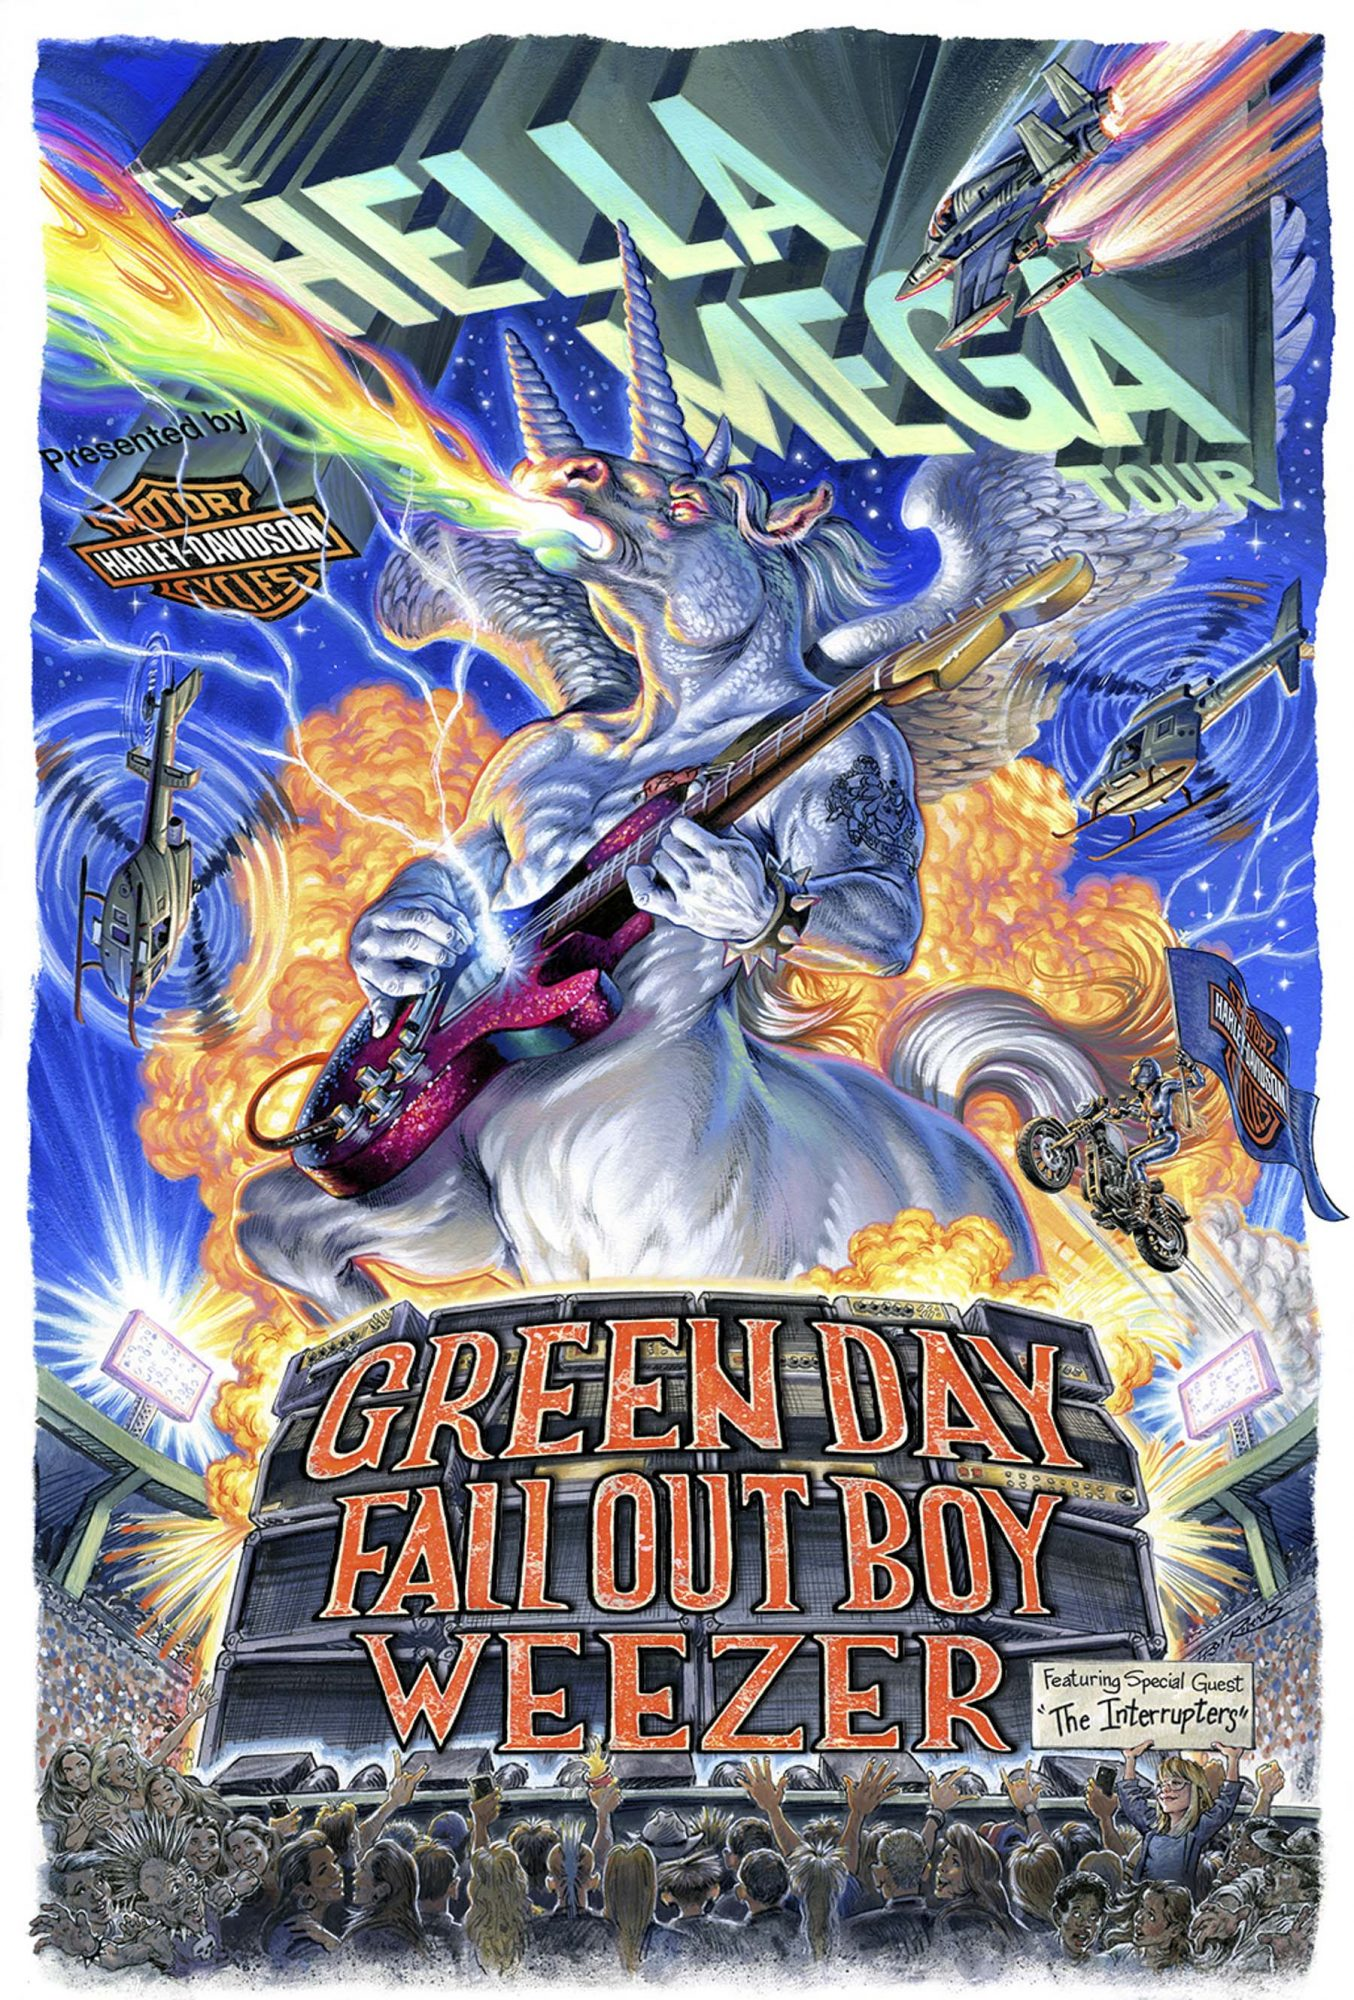 The Hella Mega Tour poster https://twitter.com/GreenDay/status/1171459311987392514 CR: Green Day/Twitter